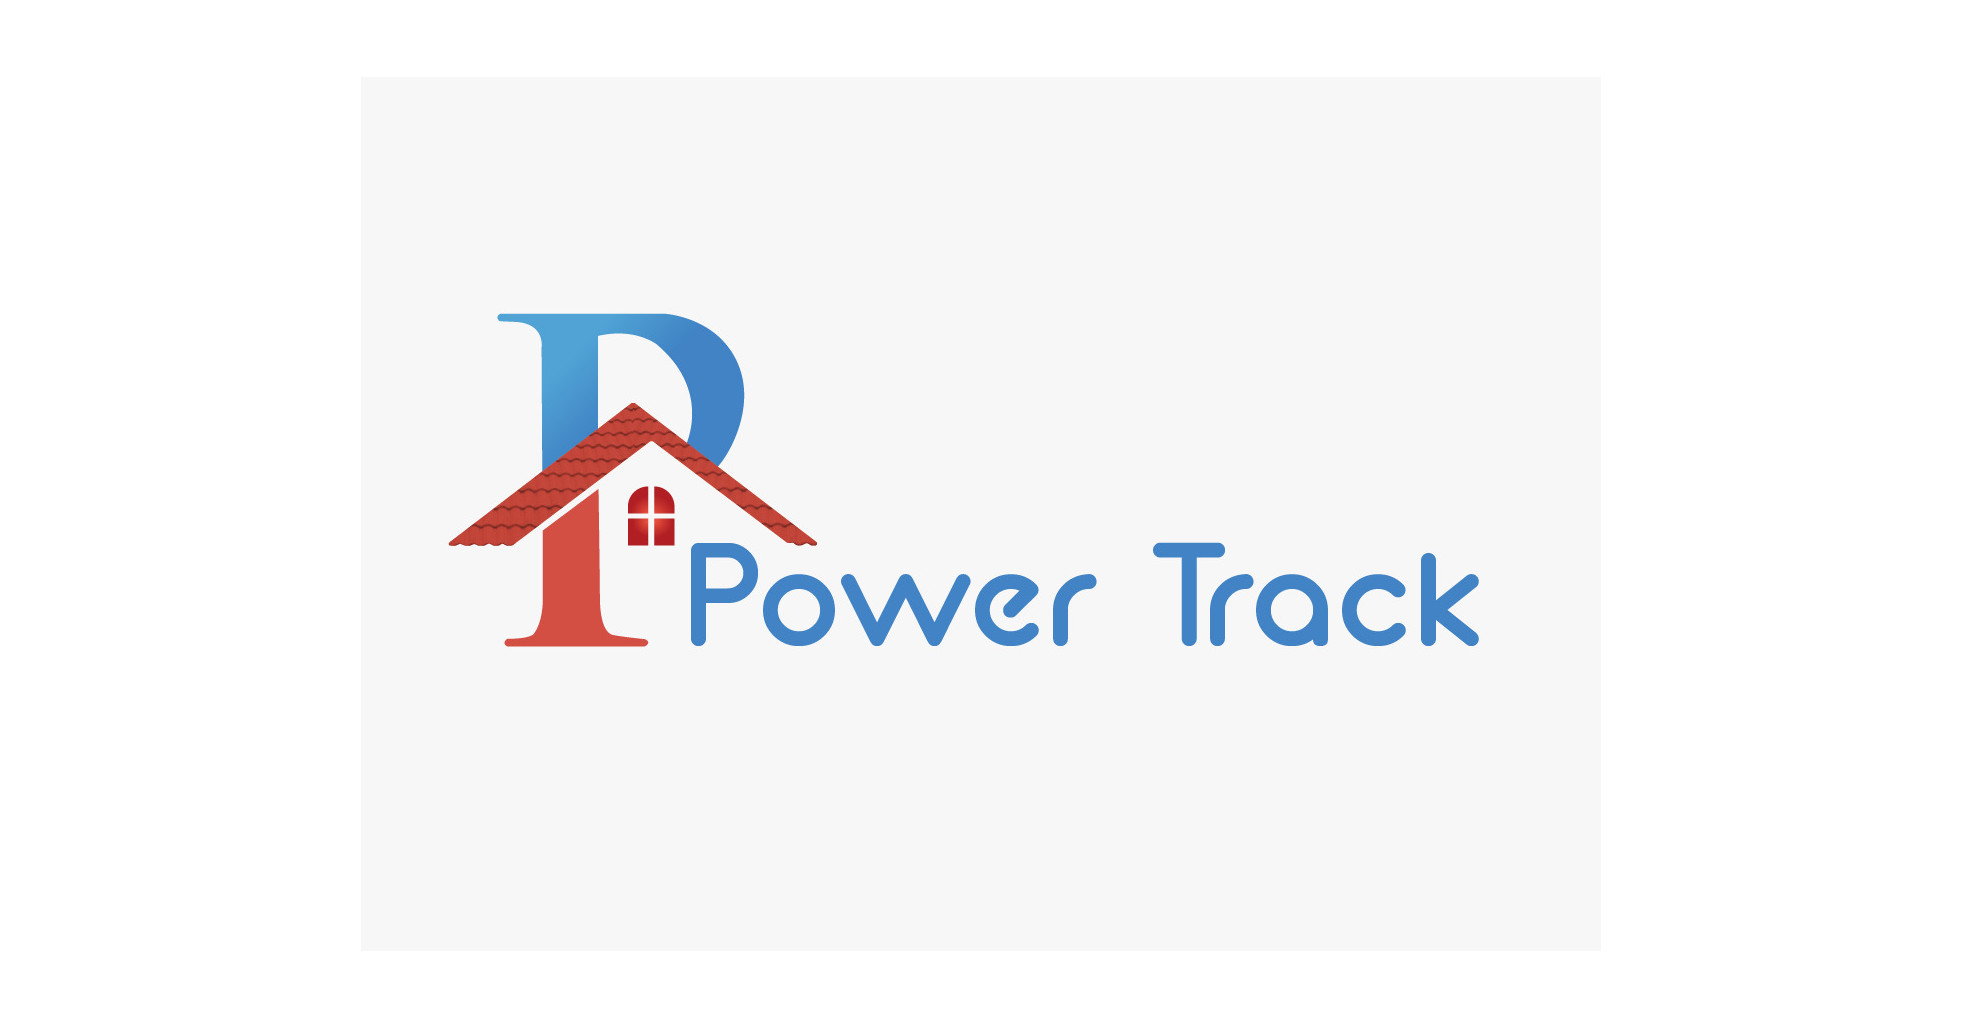 Job: Real Estate Sales Manager at Power Track in Cairo, Egypt